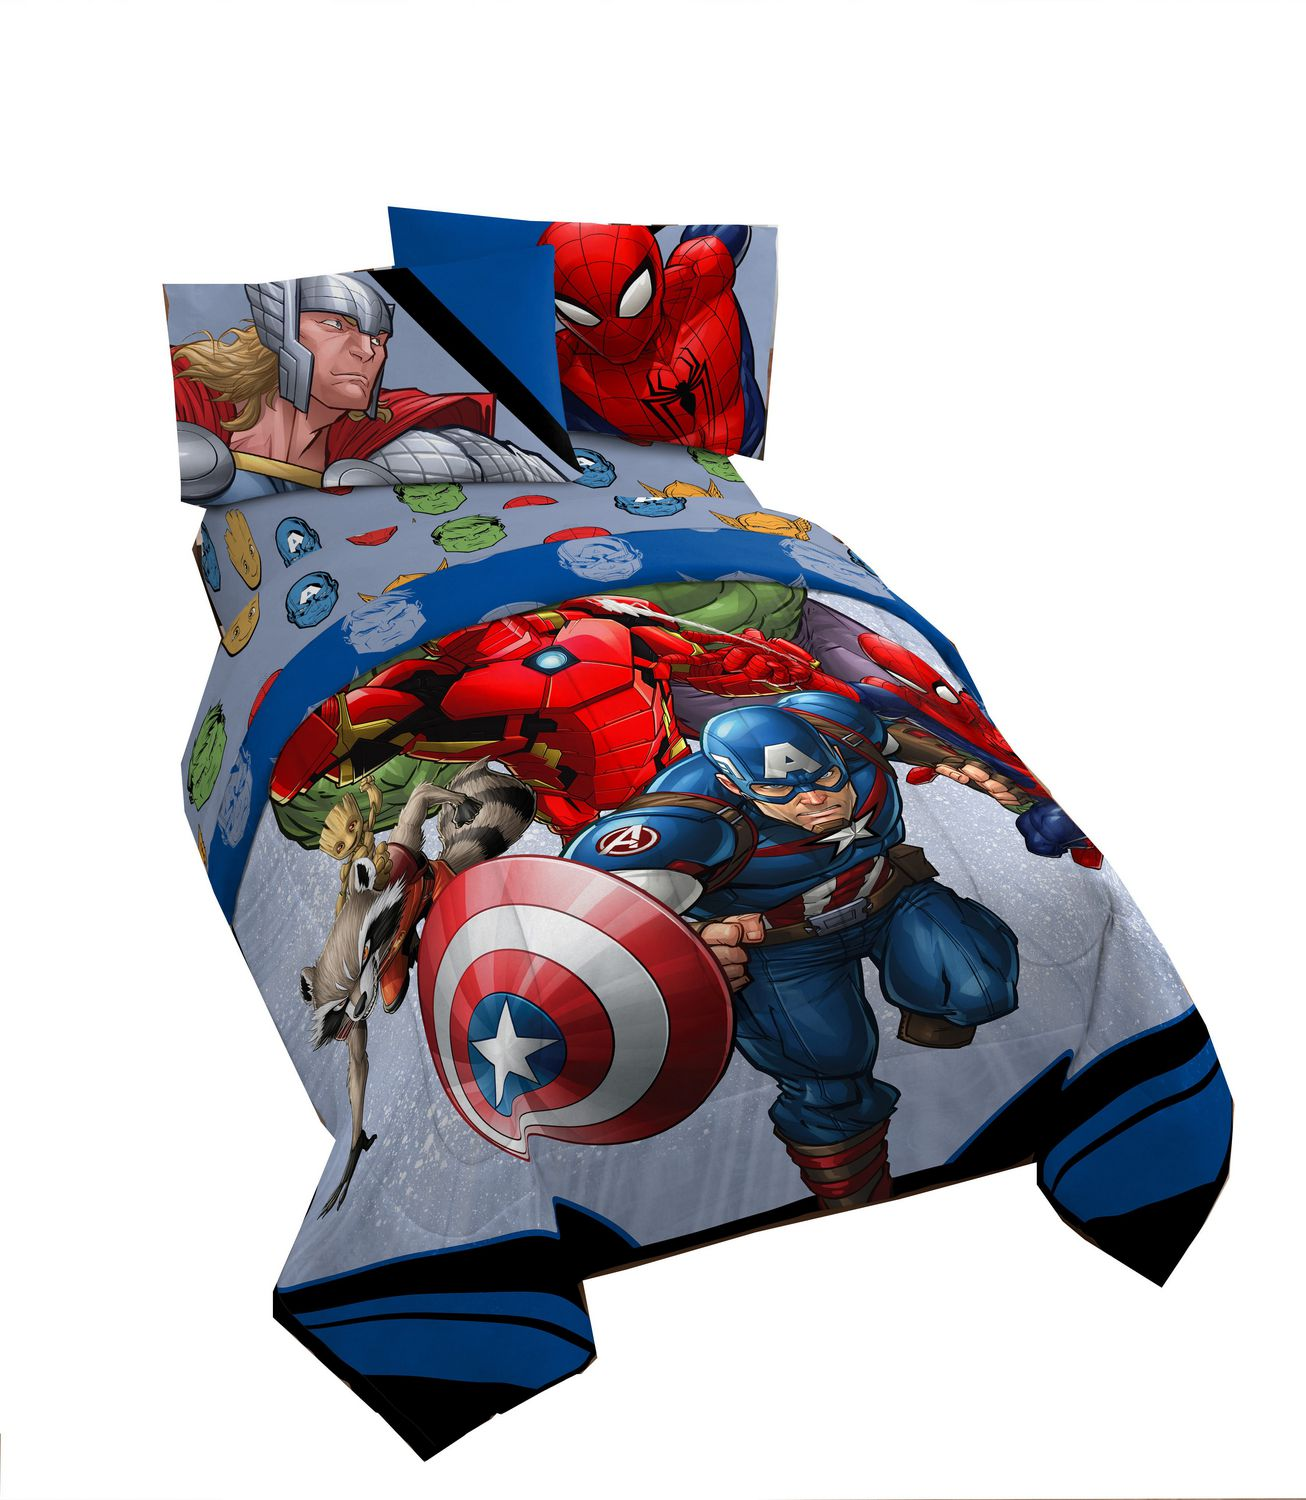 children deluxe pin delta twin avengers comforter from bedtime rescuing plastic bed features this